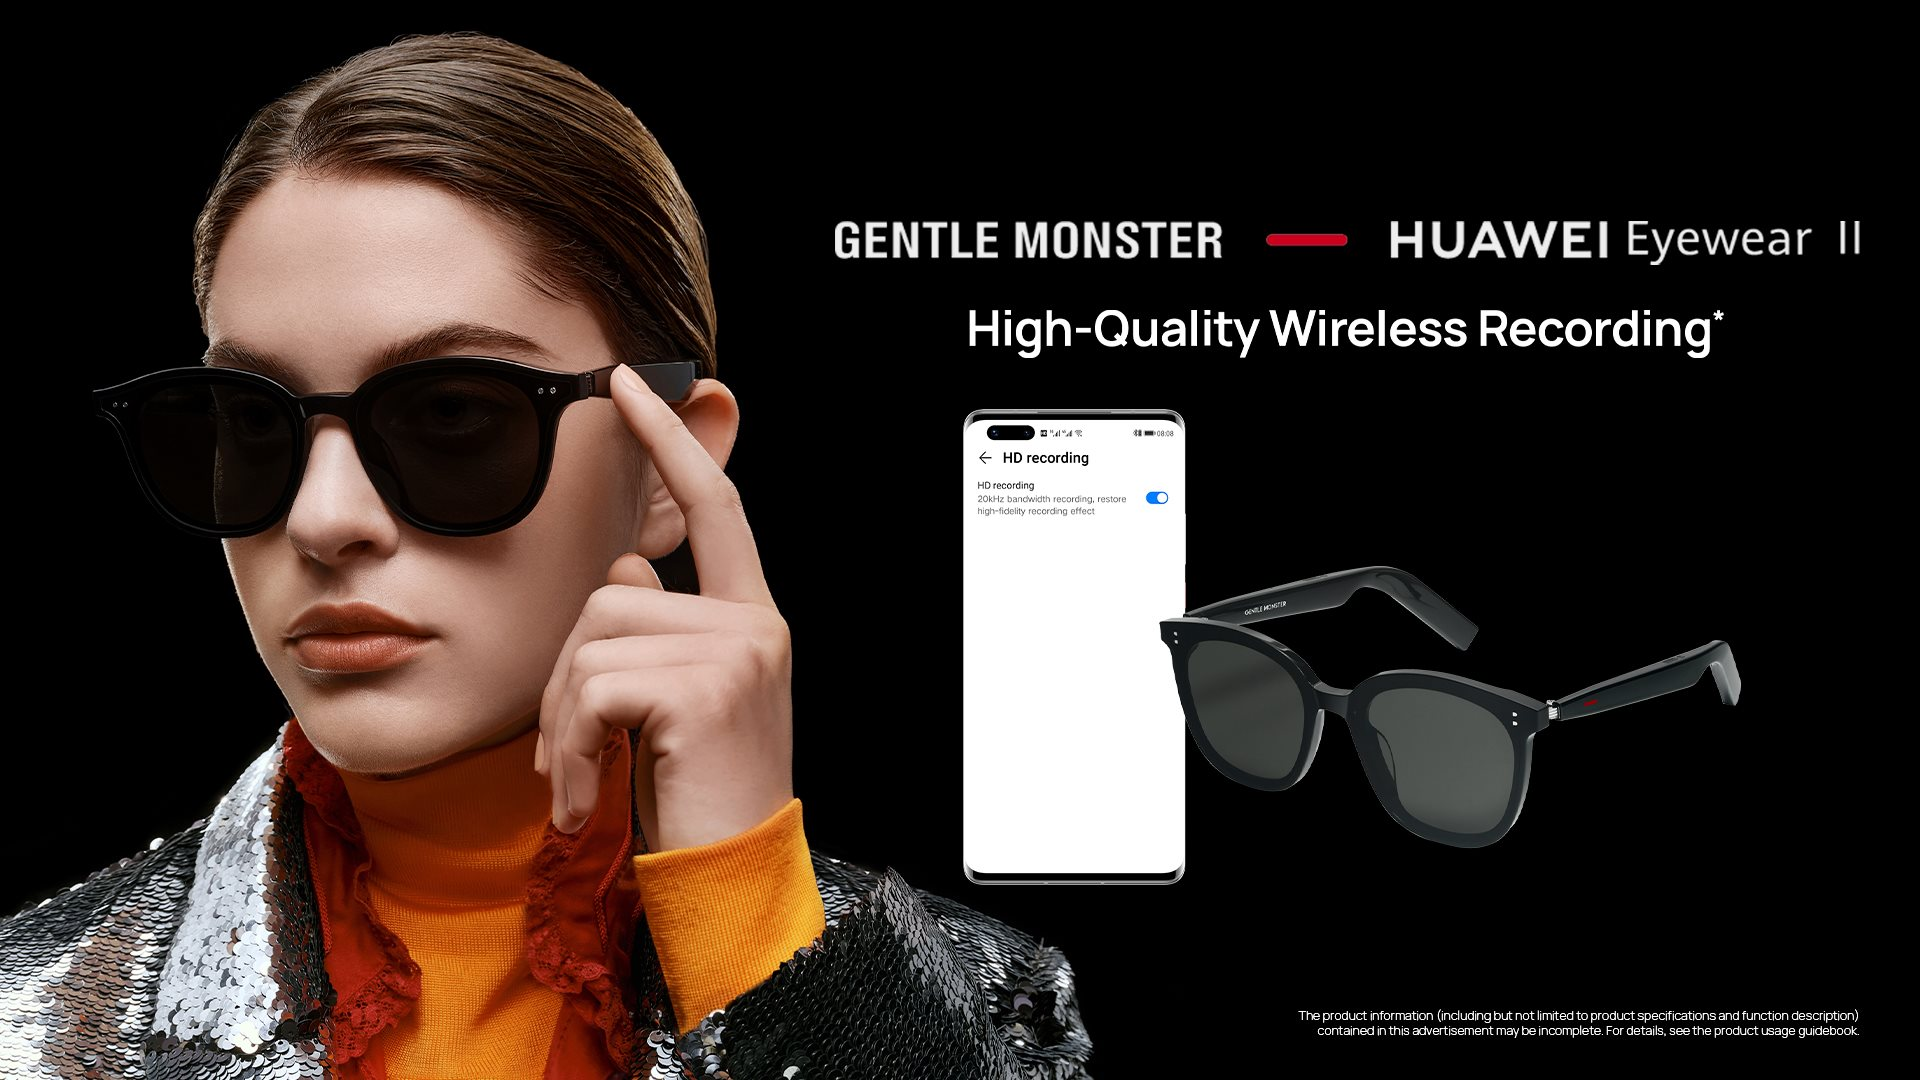 Record a vlog no matter where you are 📹 #HUAWEIGentleMonsterEyewearII 🕶️offers stable transmission to guarantee you a crystal clear sound.